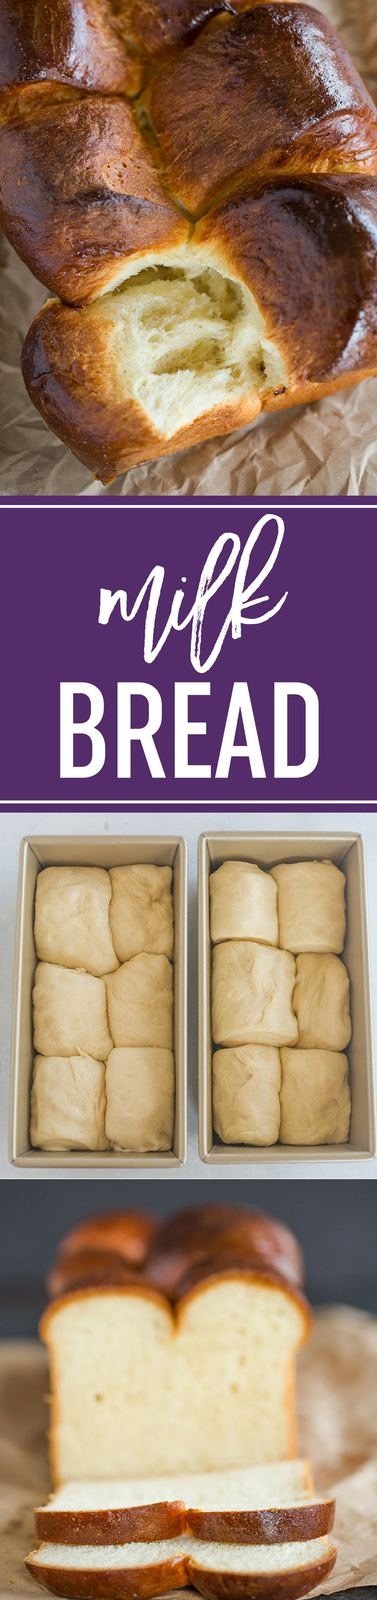 Milk Bread! A fabulous recipe for the iconic soft and fluffy bread that can be made into loaves, pull-apart bread, rolls, or split-top buns. #bread #baking #yeast